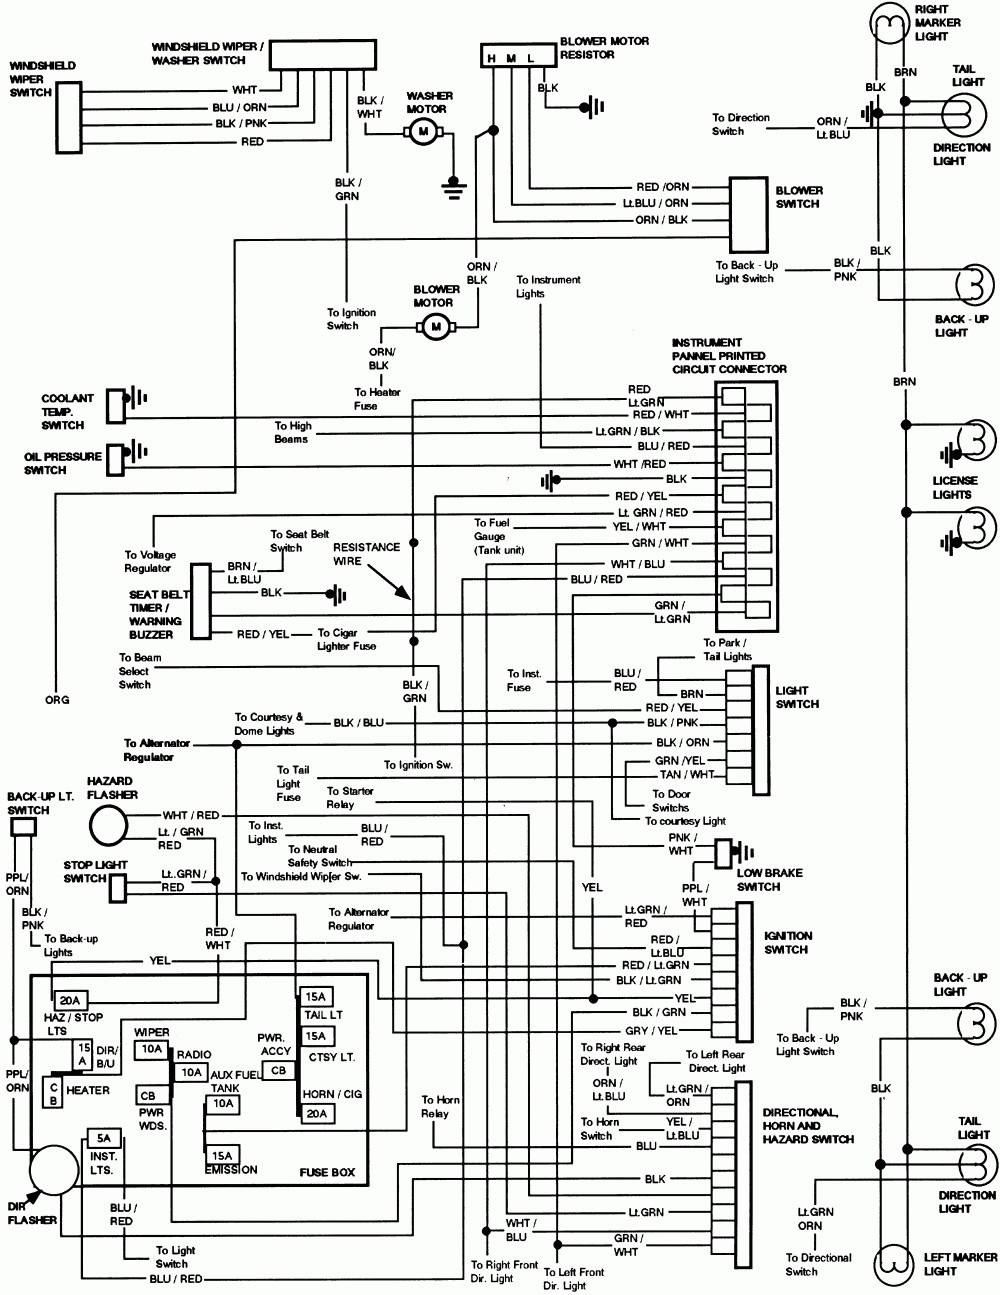 medium resolution of 1989 ford f150 ignition wiring furthermore ford f 150 fuel pump wiring diagrams furthermore 1989 ford f 250 fuel system diagram